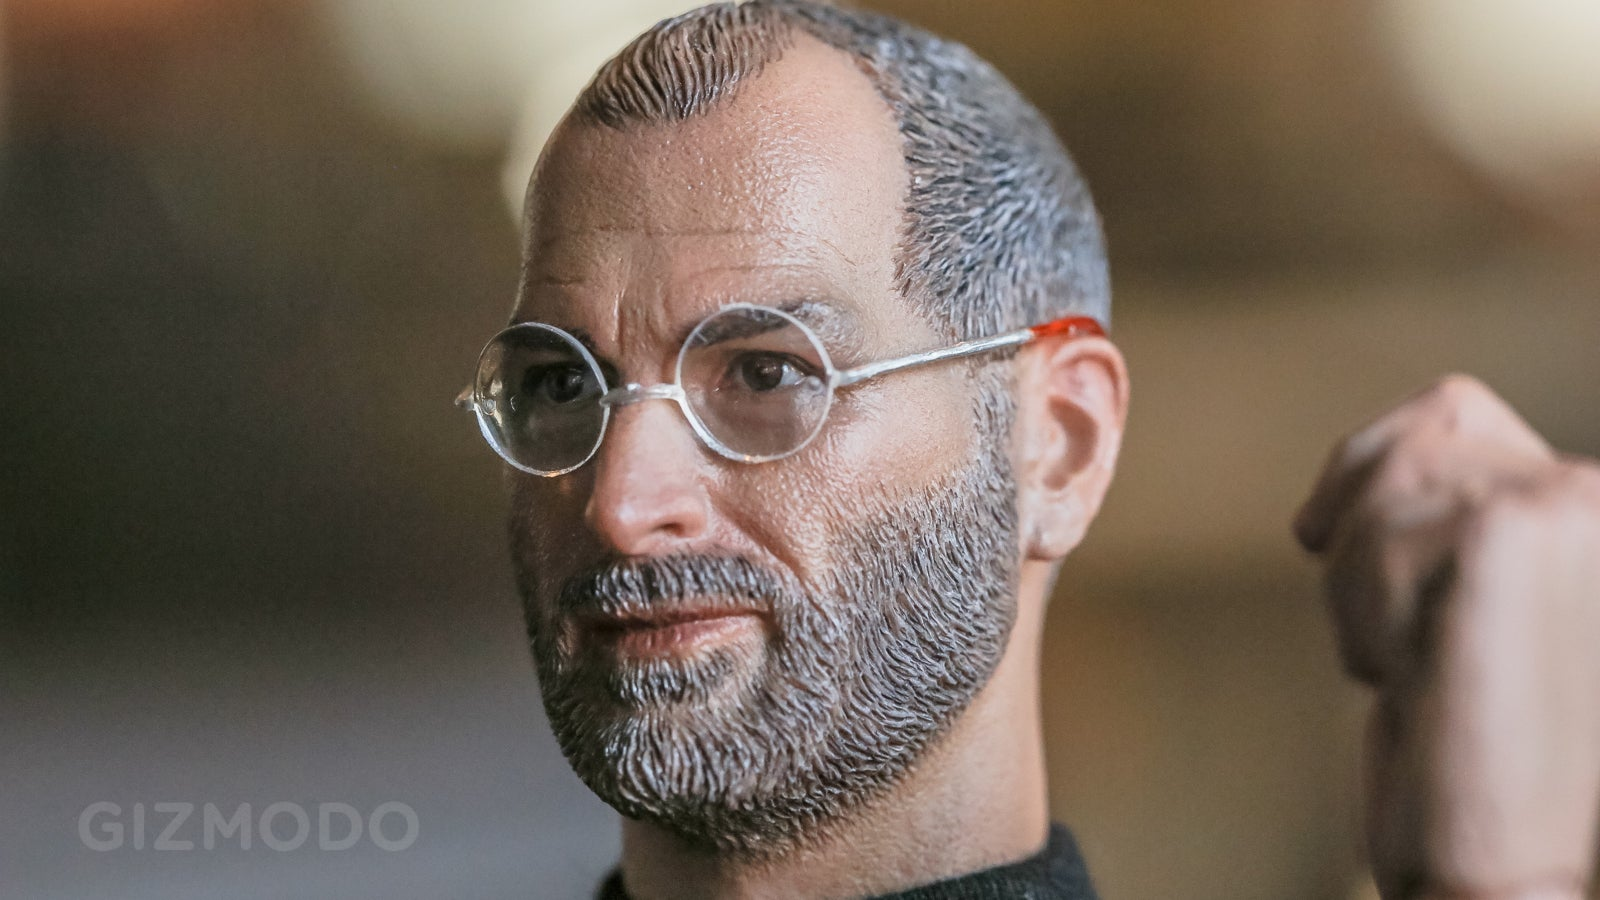 A Third, Full-Length Steve Jobs Biopic Was Just Announced—by Funny or Die